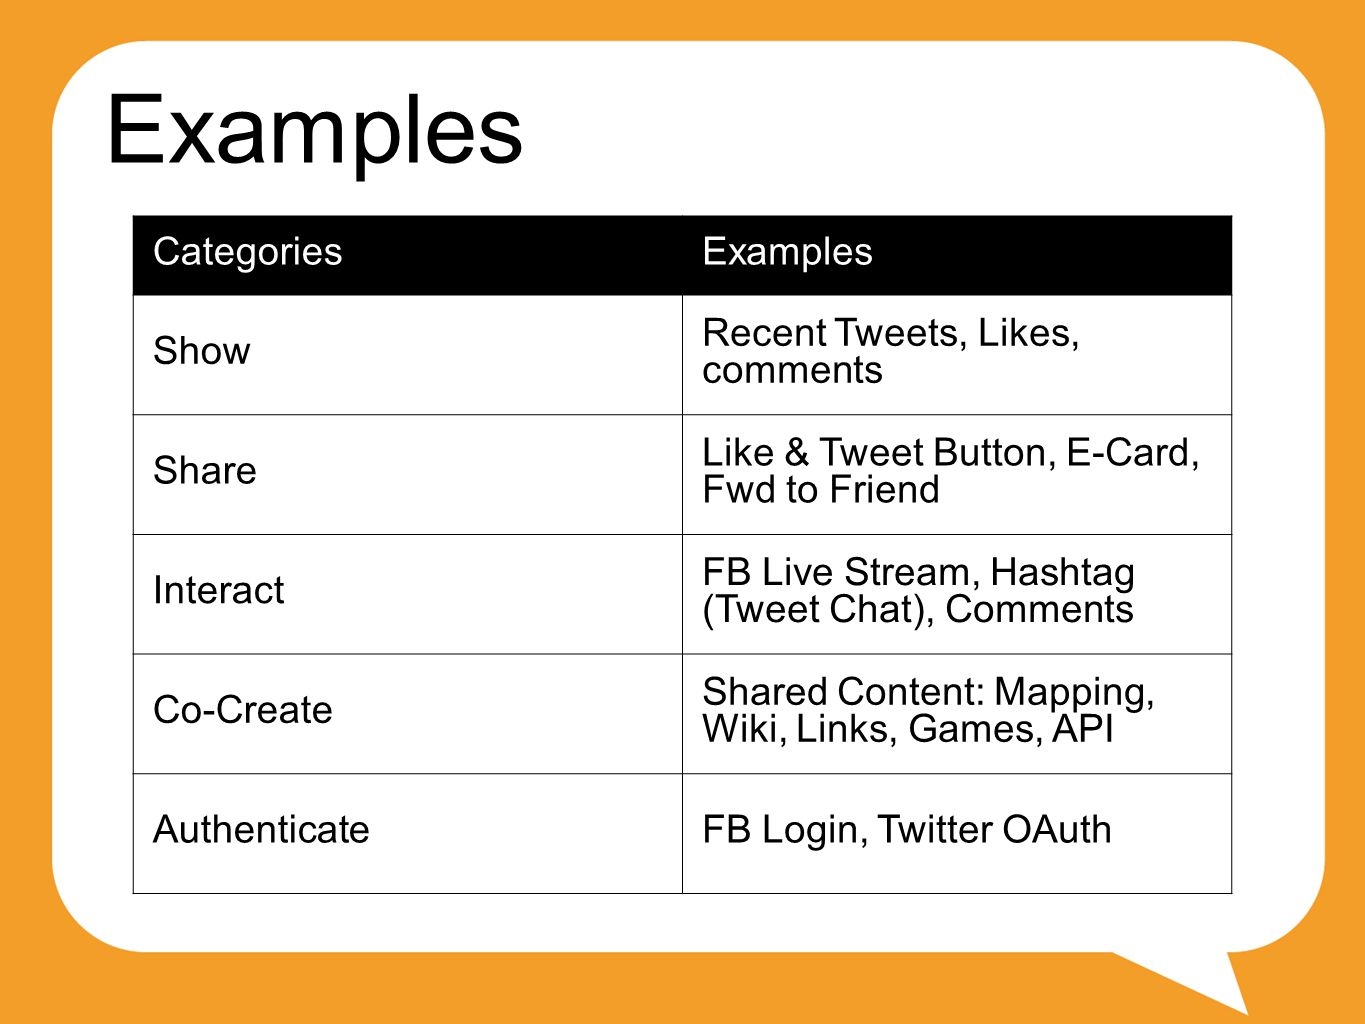 Examples CategoriesExamples Show Recent Tweets, Likes, comments Share Like & Tweet Button, E-Card, Fwd to Friend Interact FB Live Stream, Hashtag (Tweet Chat), Comments Co-Create Shared Content: Mapping, Wiki, Links, Games, API AuthenticateFB Login, Twitter OAuth